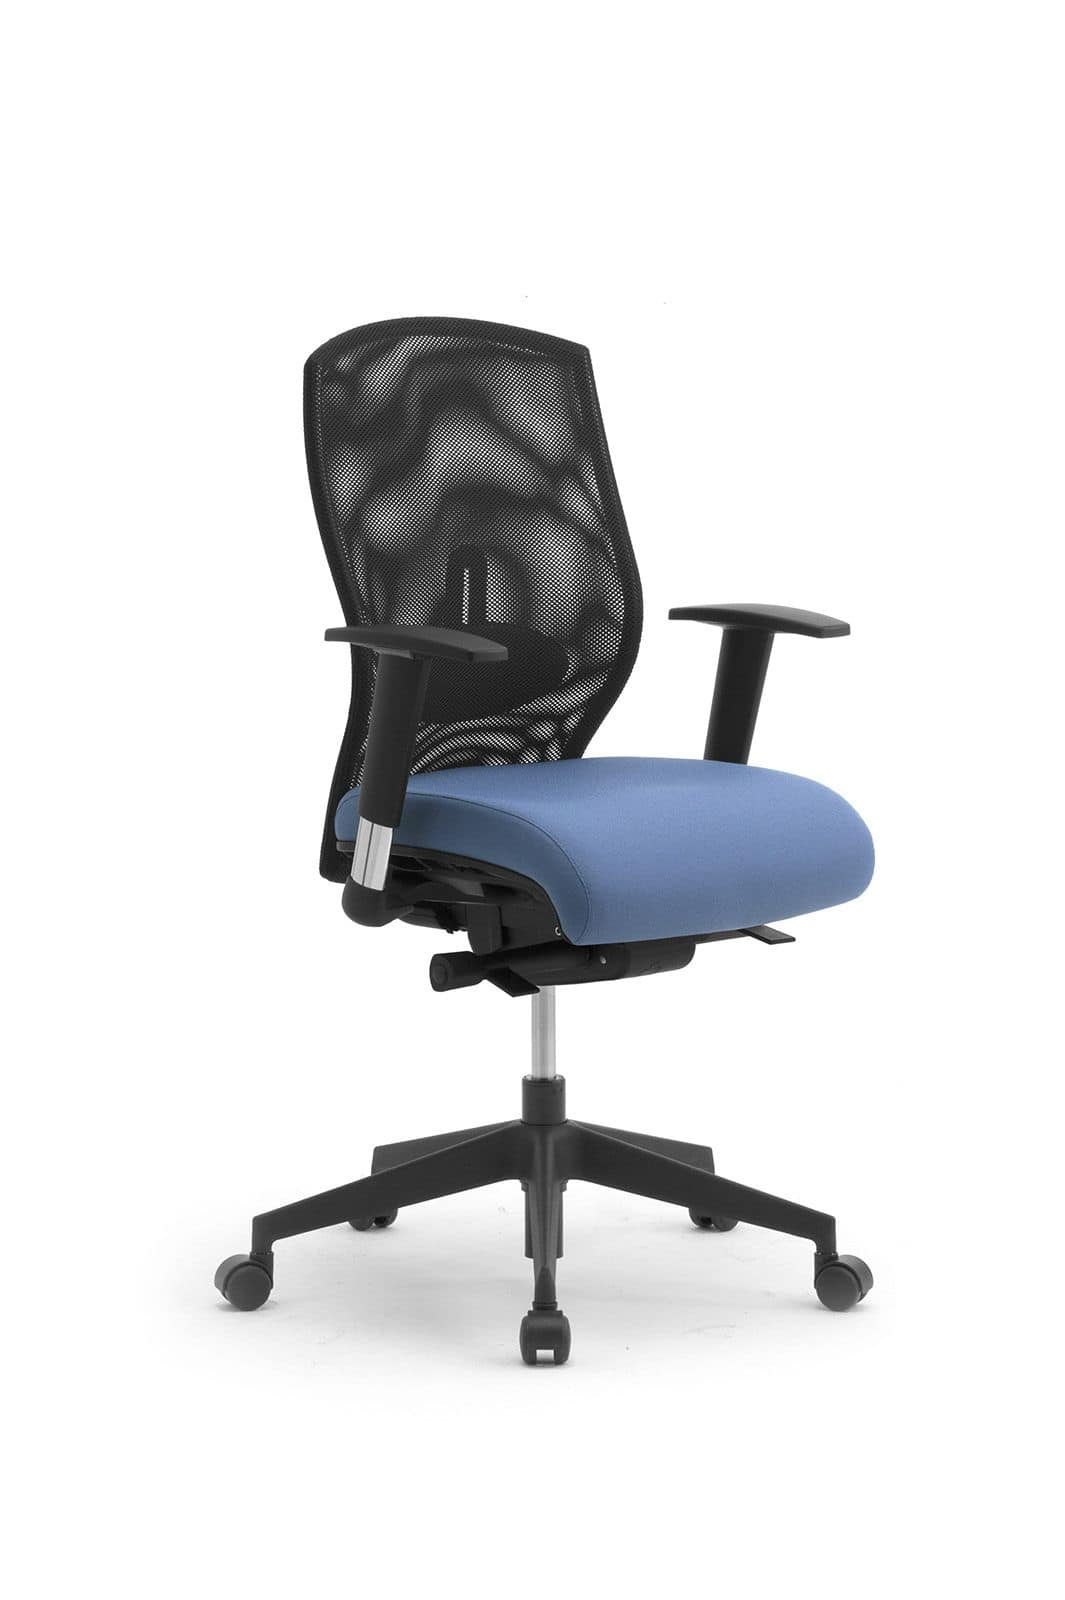 Egonomic task 53320, Office chair on wheels, backrest in mesh